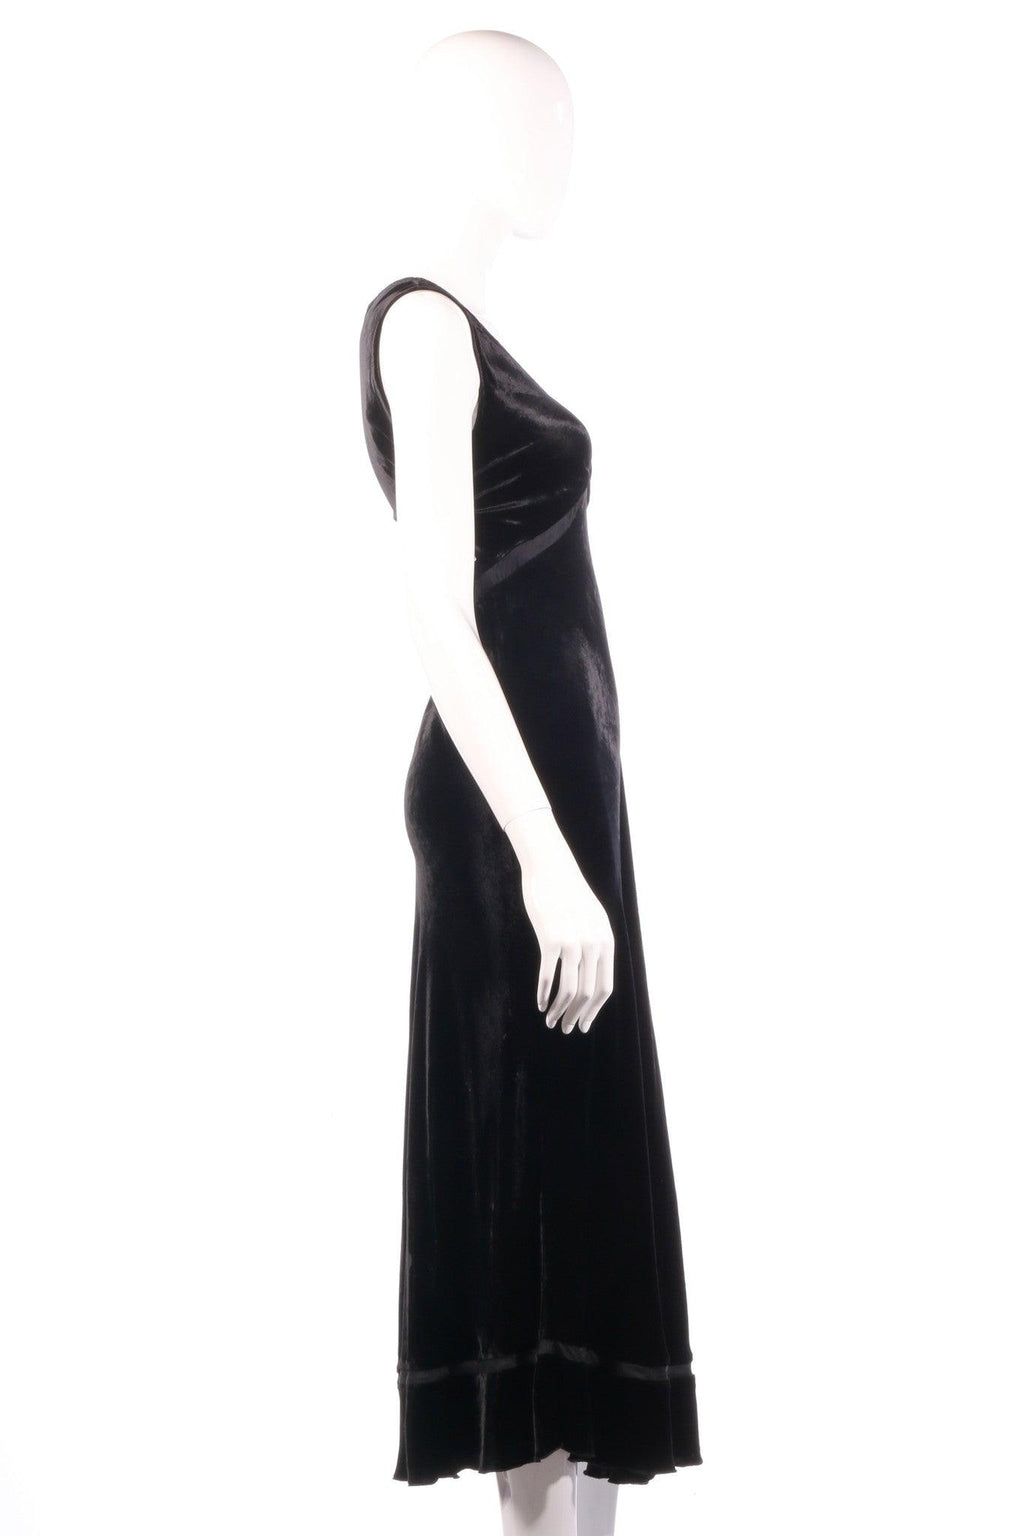 Kew black velvet maxi dress size 14 side